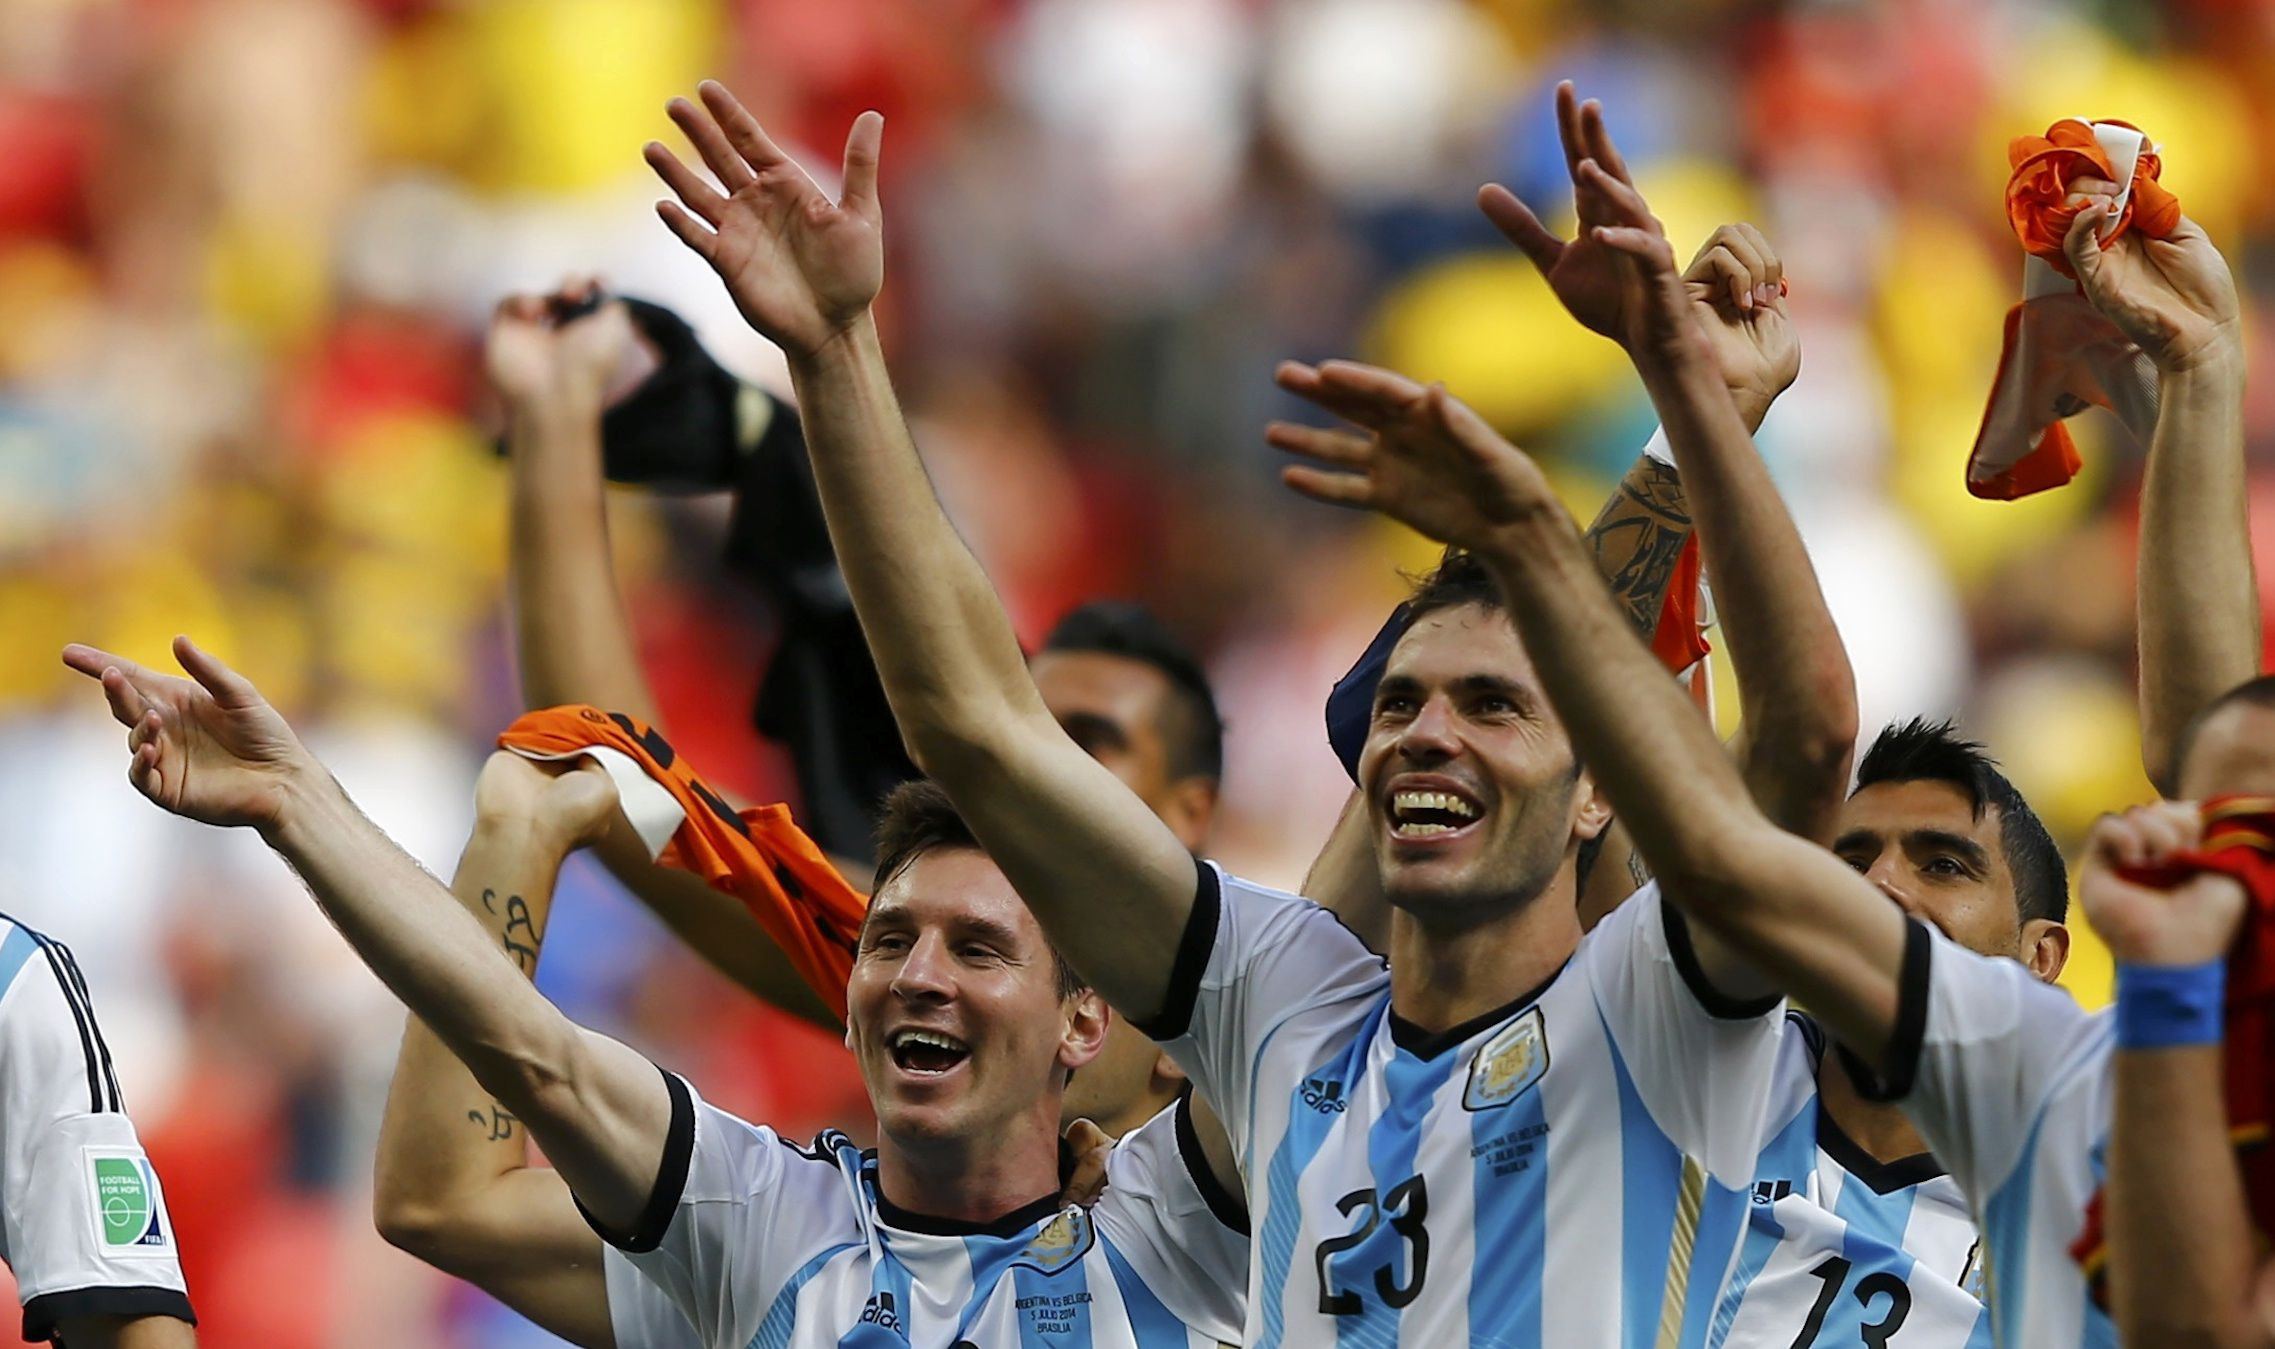 Argentina's Lionel Messi and teammates celebrate winning the 2014 World Cup quarter-finals between Argentina and Belgium at the Brasilia national stadium in Brasilia July 5, 2014. REUTERS/Dominic Ebenbichler (BRAZIL - Tags: TPX IMAGES OF THE DAY SOCCER SPORT WORLD CUP) TOPCUP